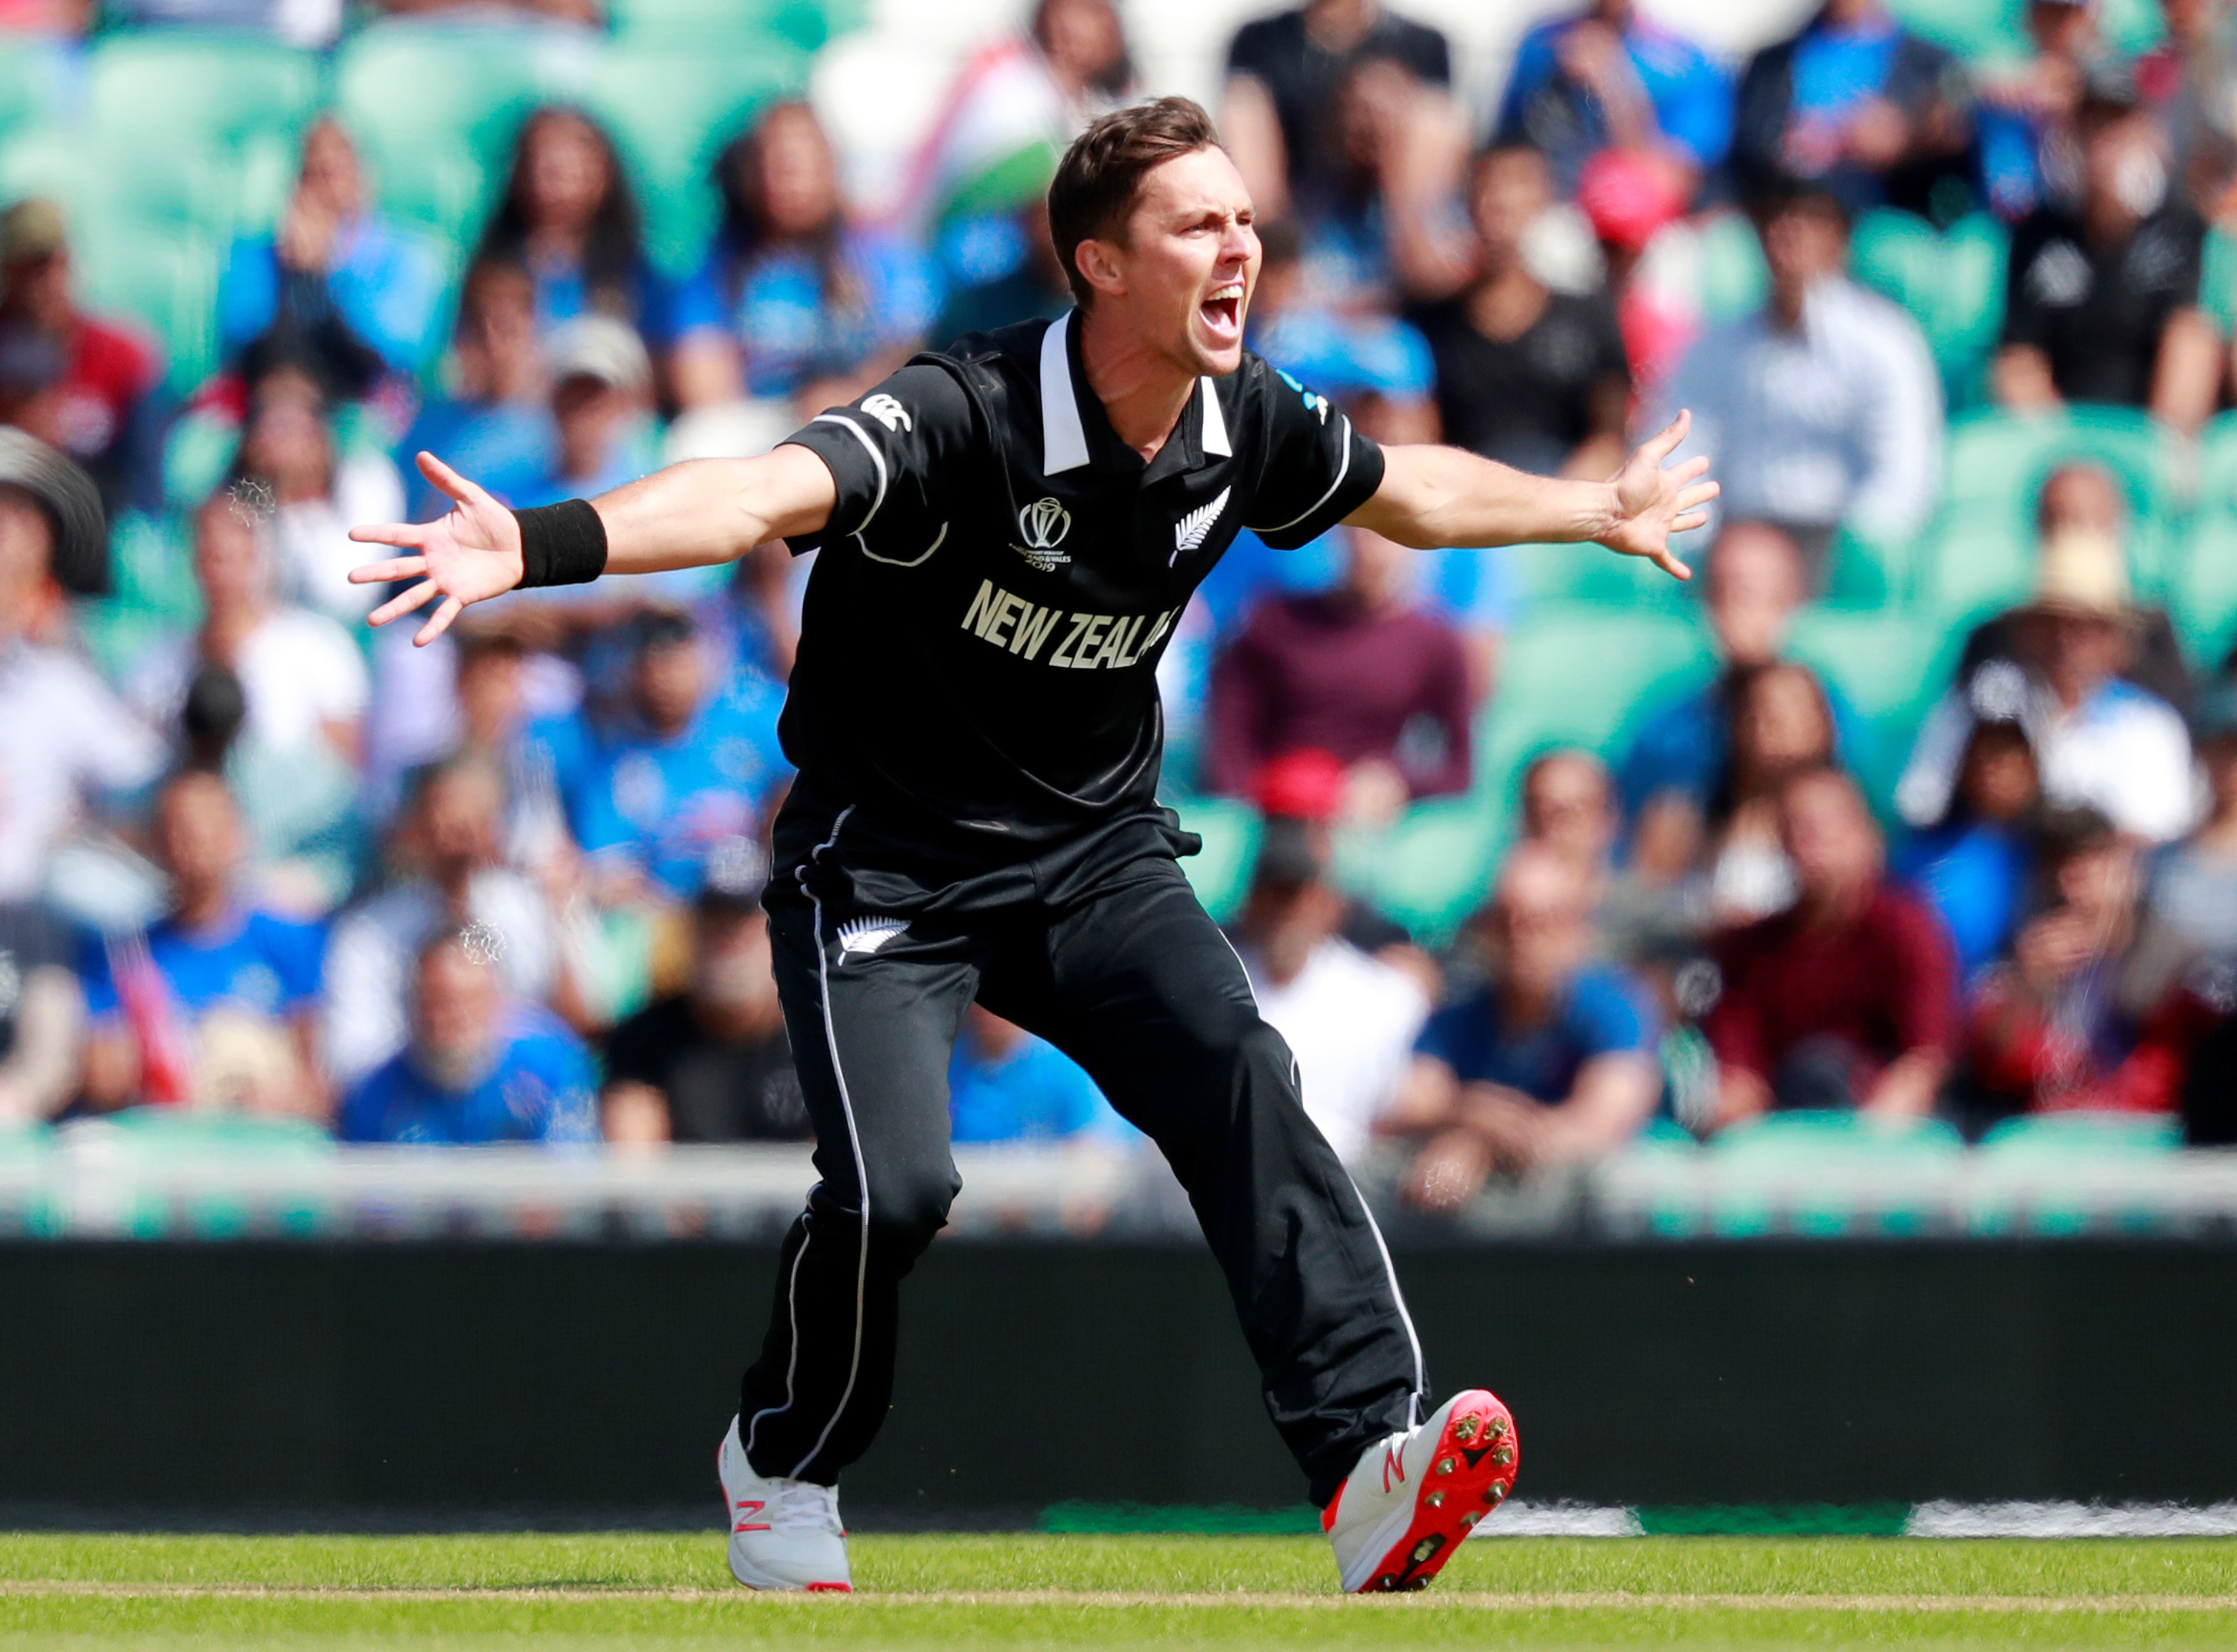 Cricket: Kiwis not focused on landing knockout blow on South Africa - Boult